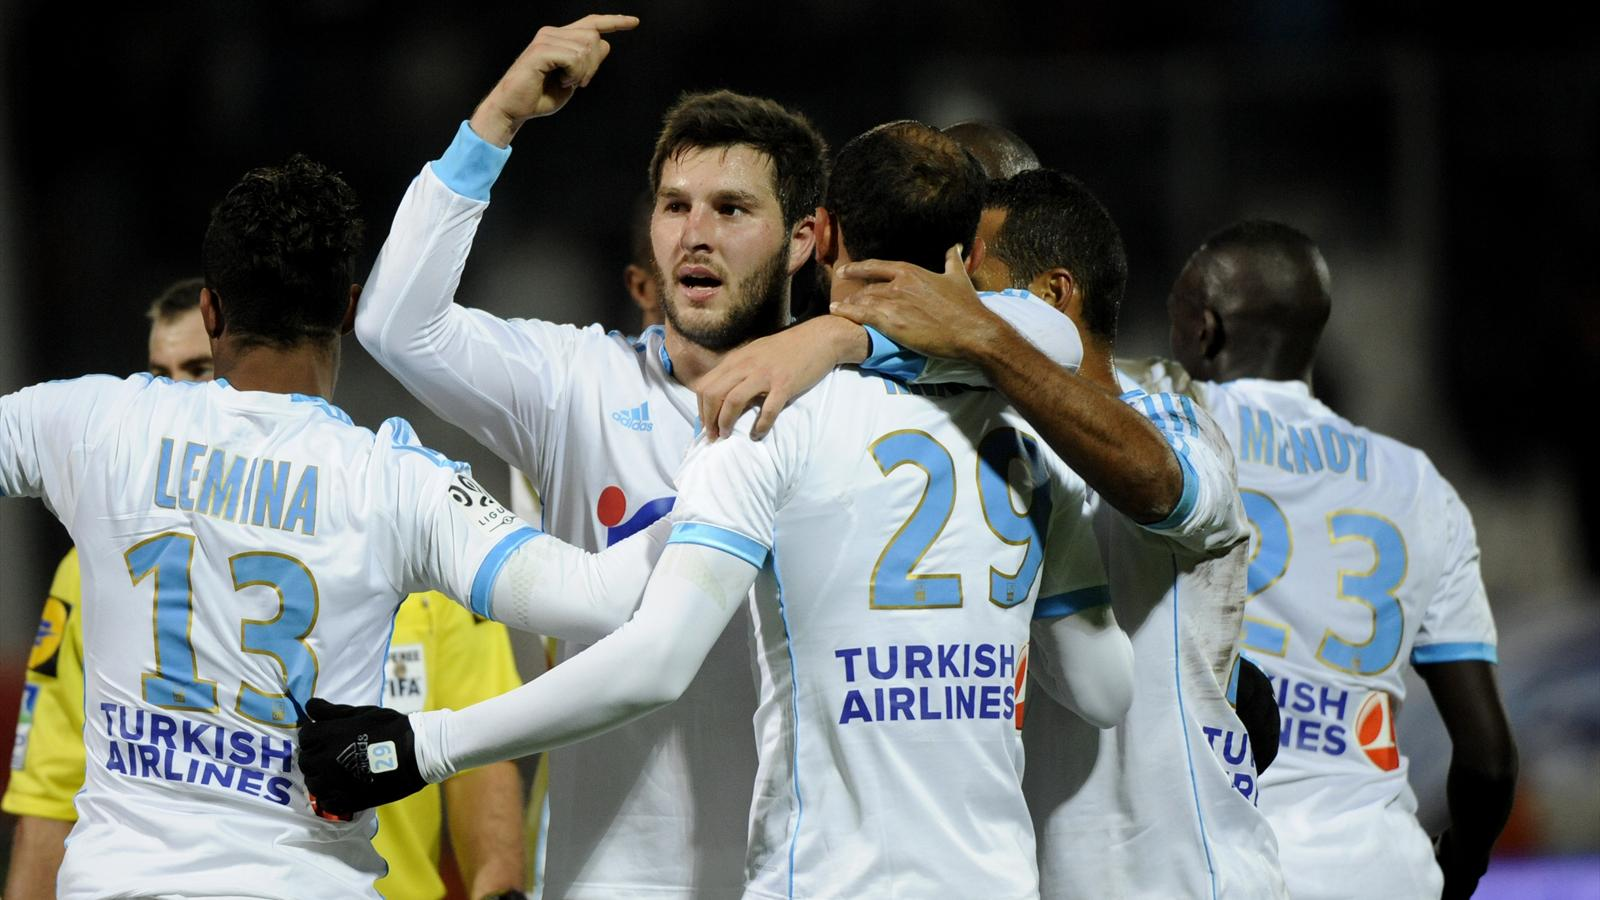 Match Olympique de Marseille Montpellier en direct streaming live